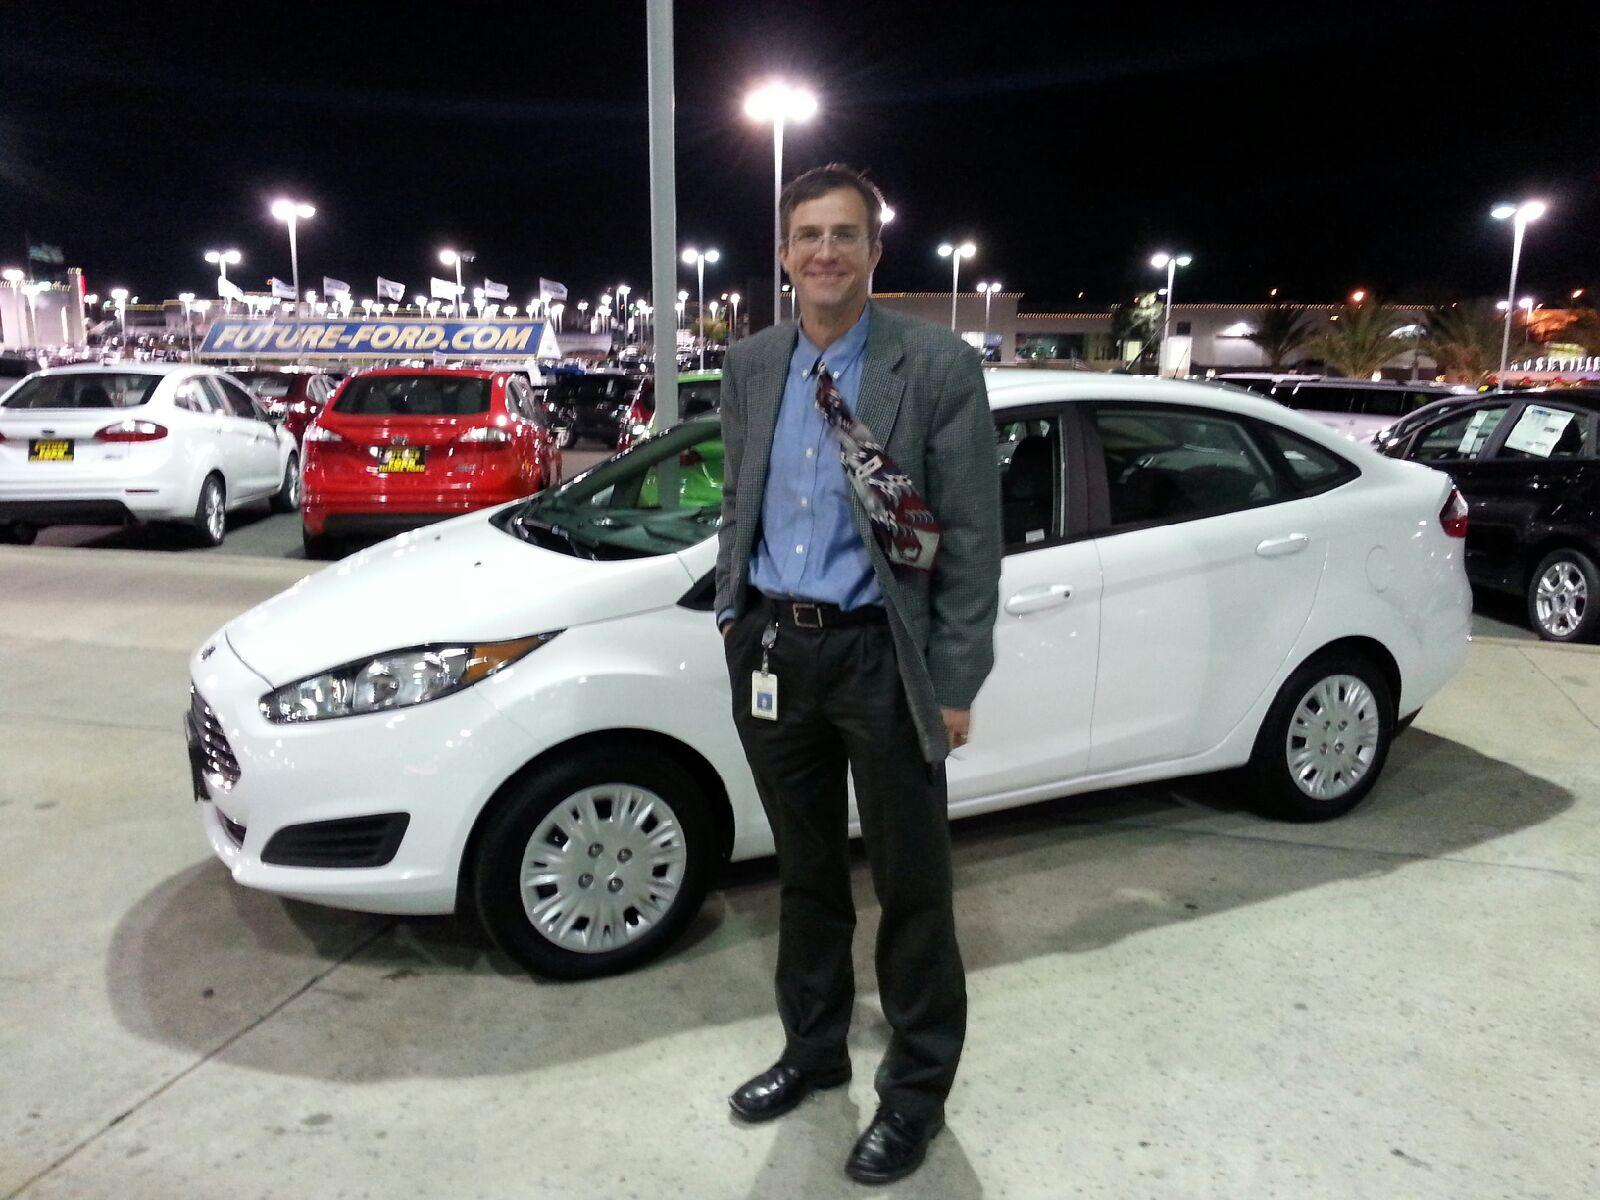 Future ford of roseville ca